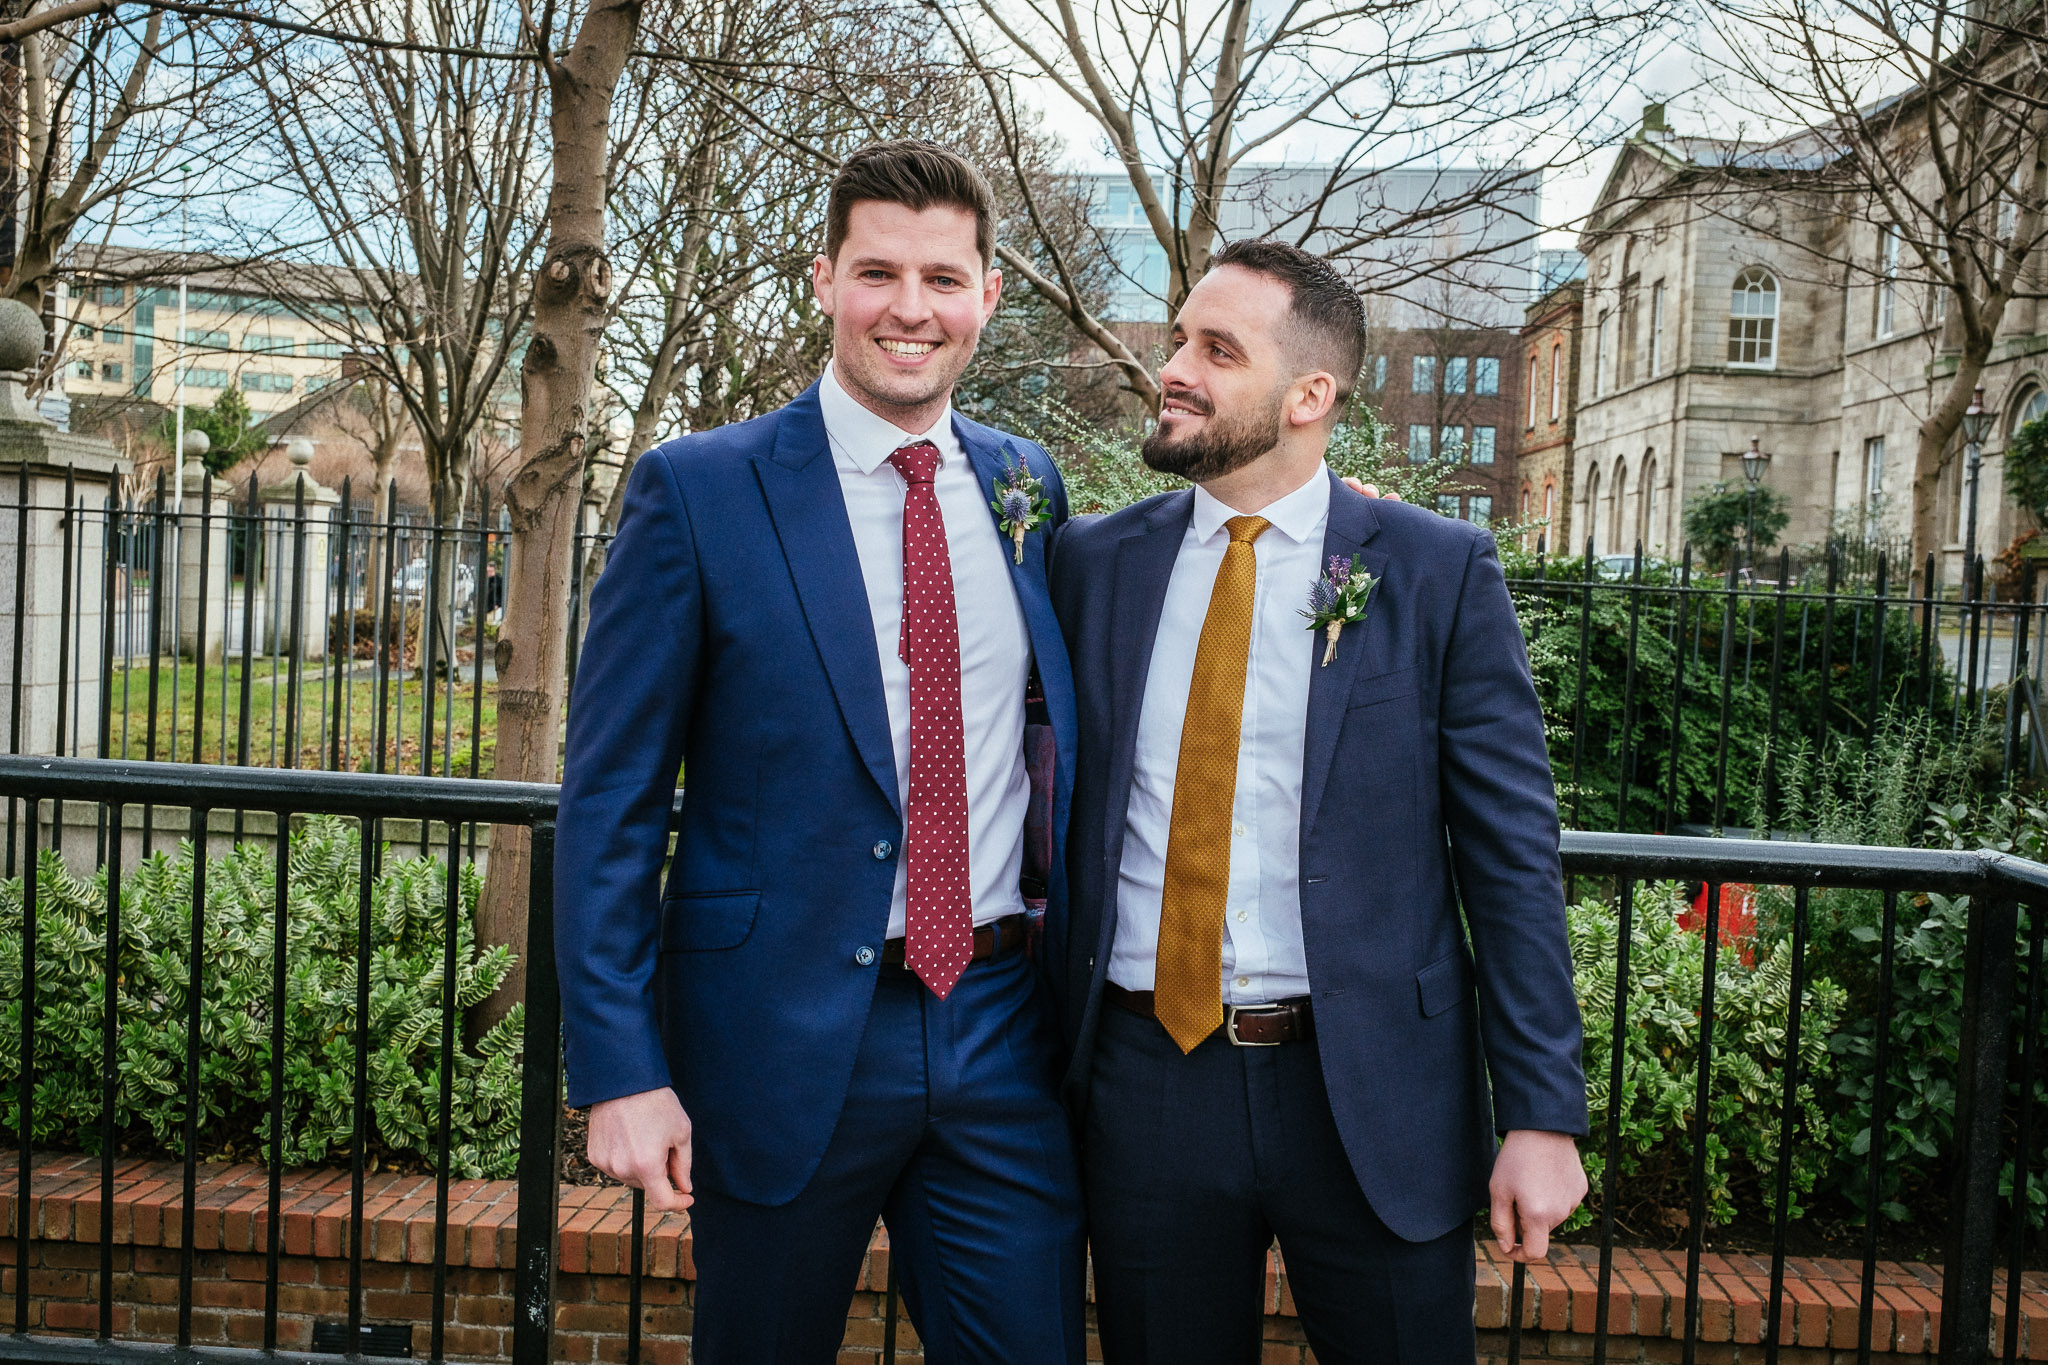 Dublin registry office wedding Photographer 2 3 2